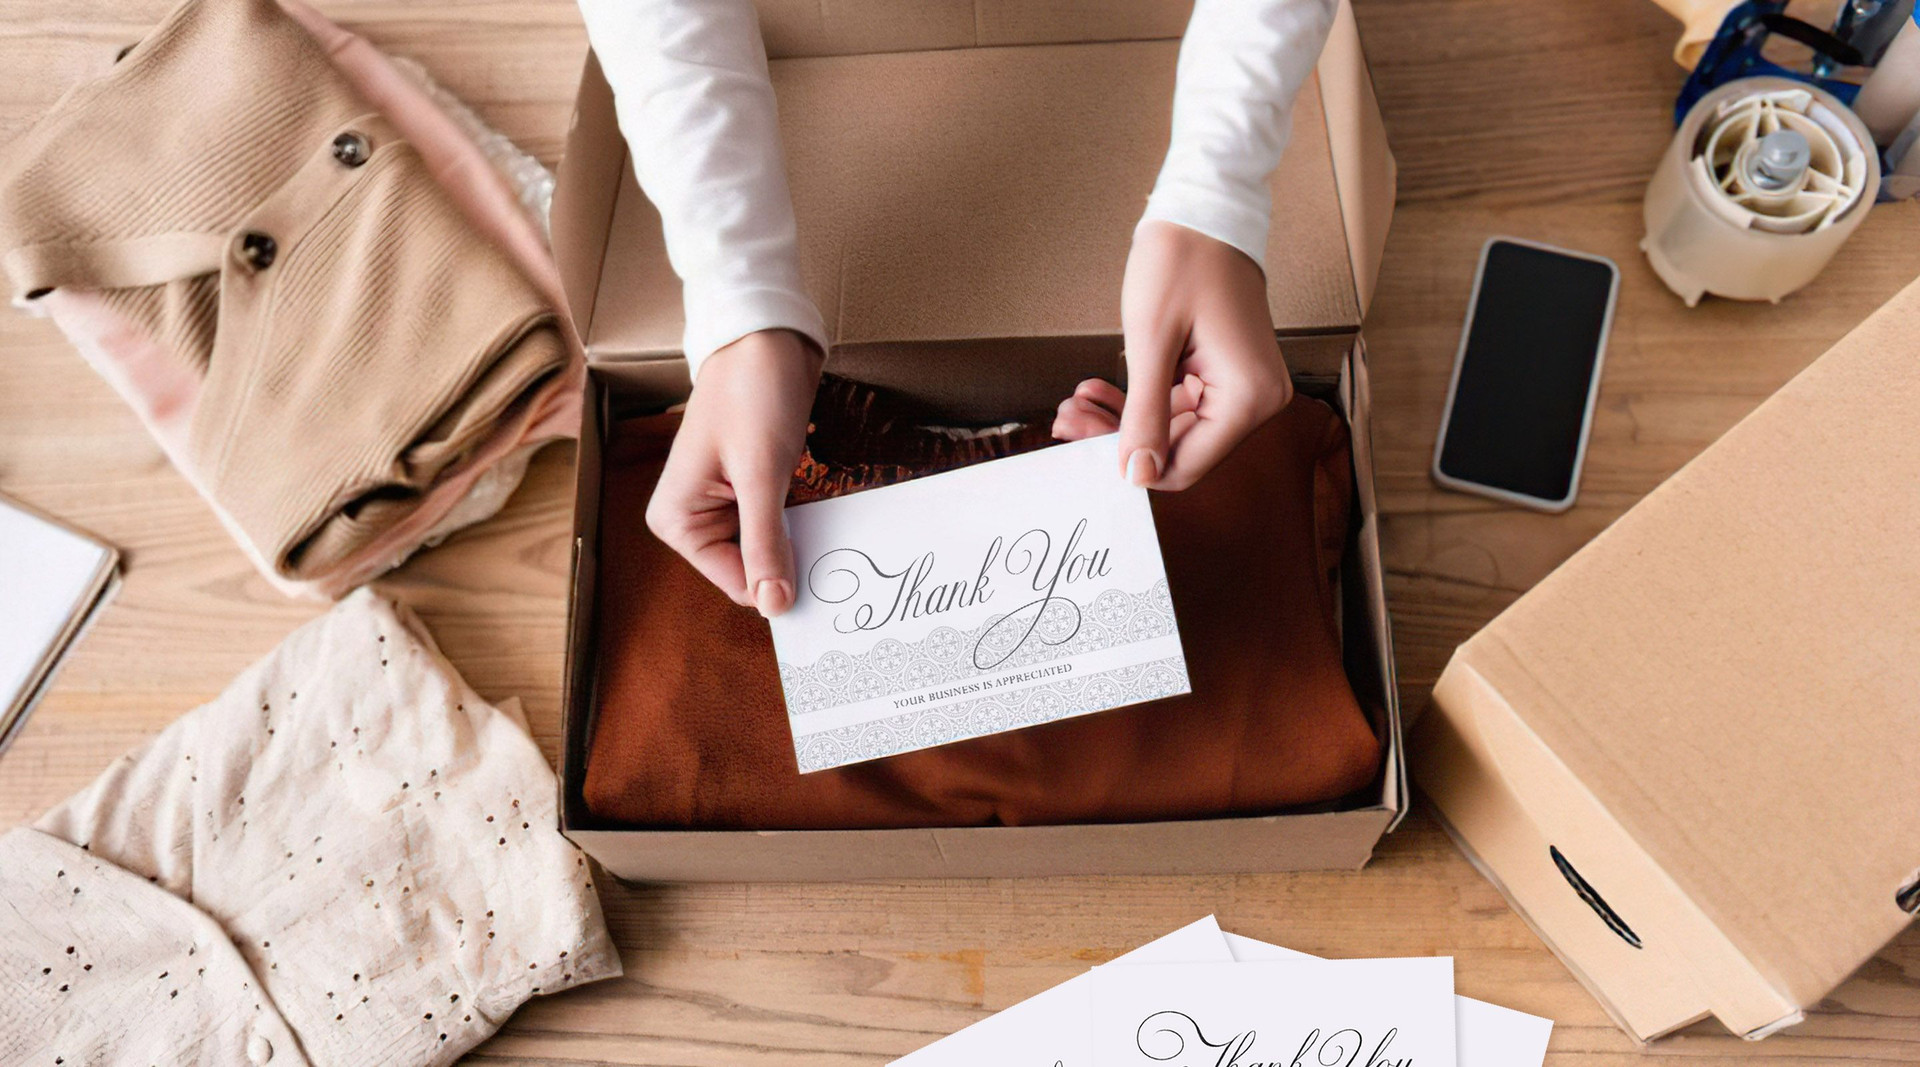 Use Bulk Thank You Cards to Promote Your Business